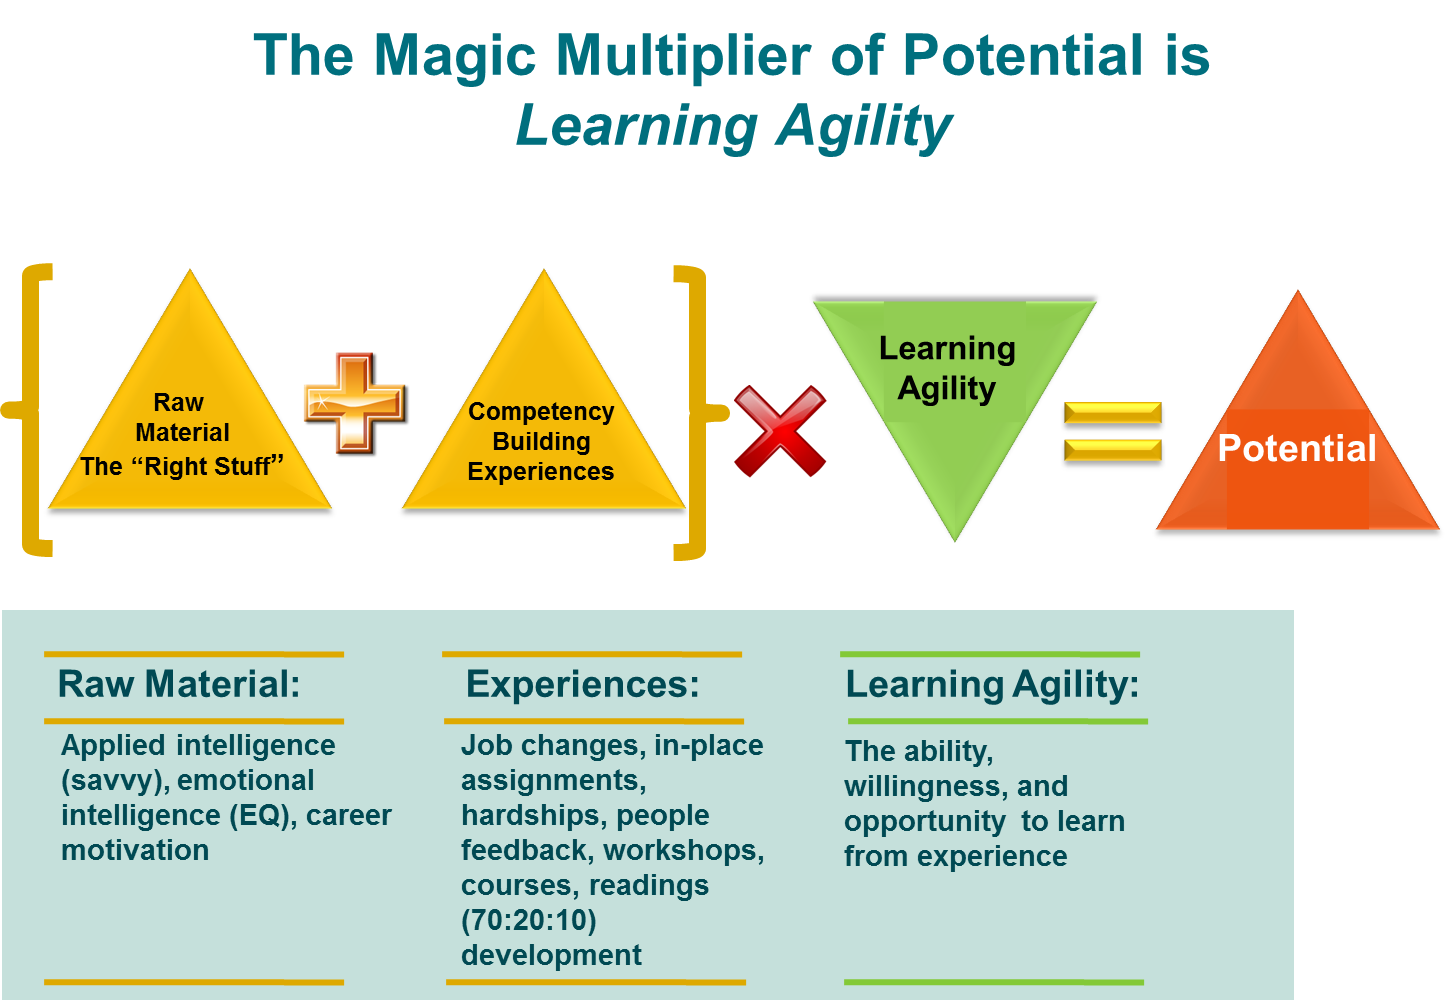 the magic multiplier of potential is learning agility